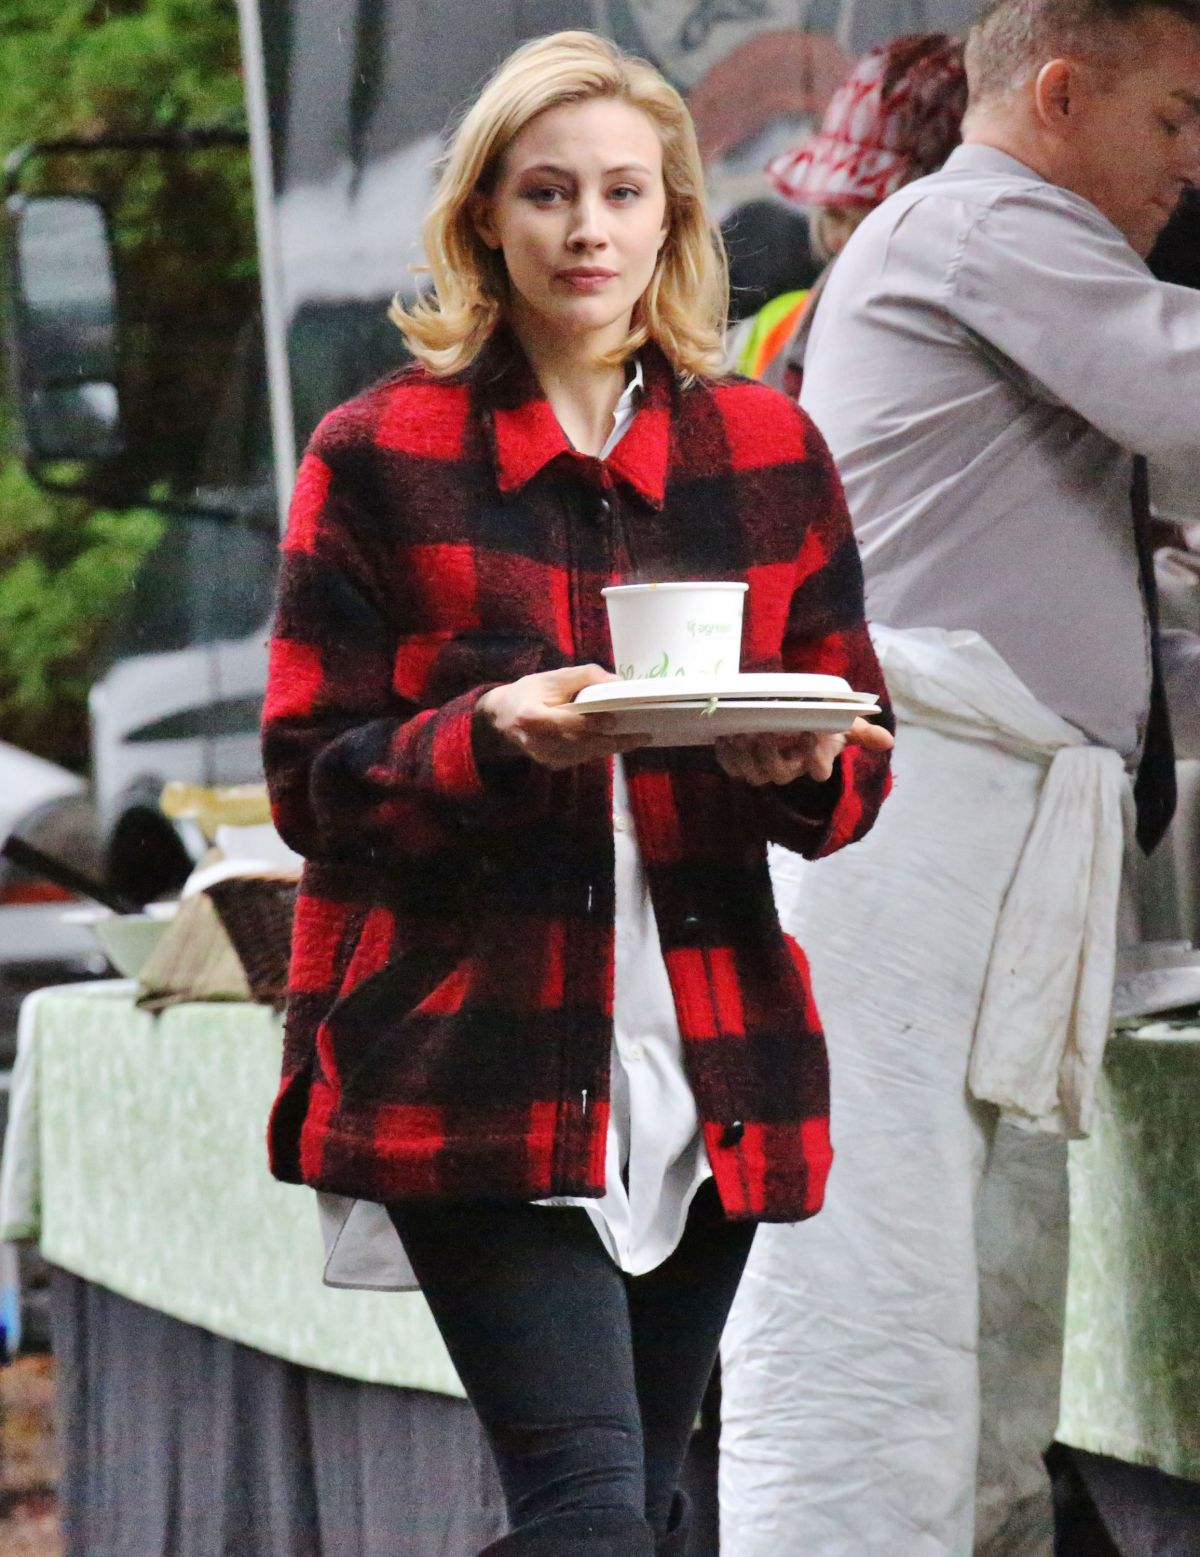 SARAH GADON on the Set of The 9th Life of Louis Drax in Vancouver